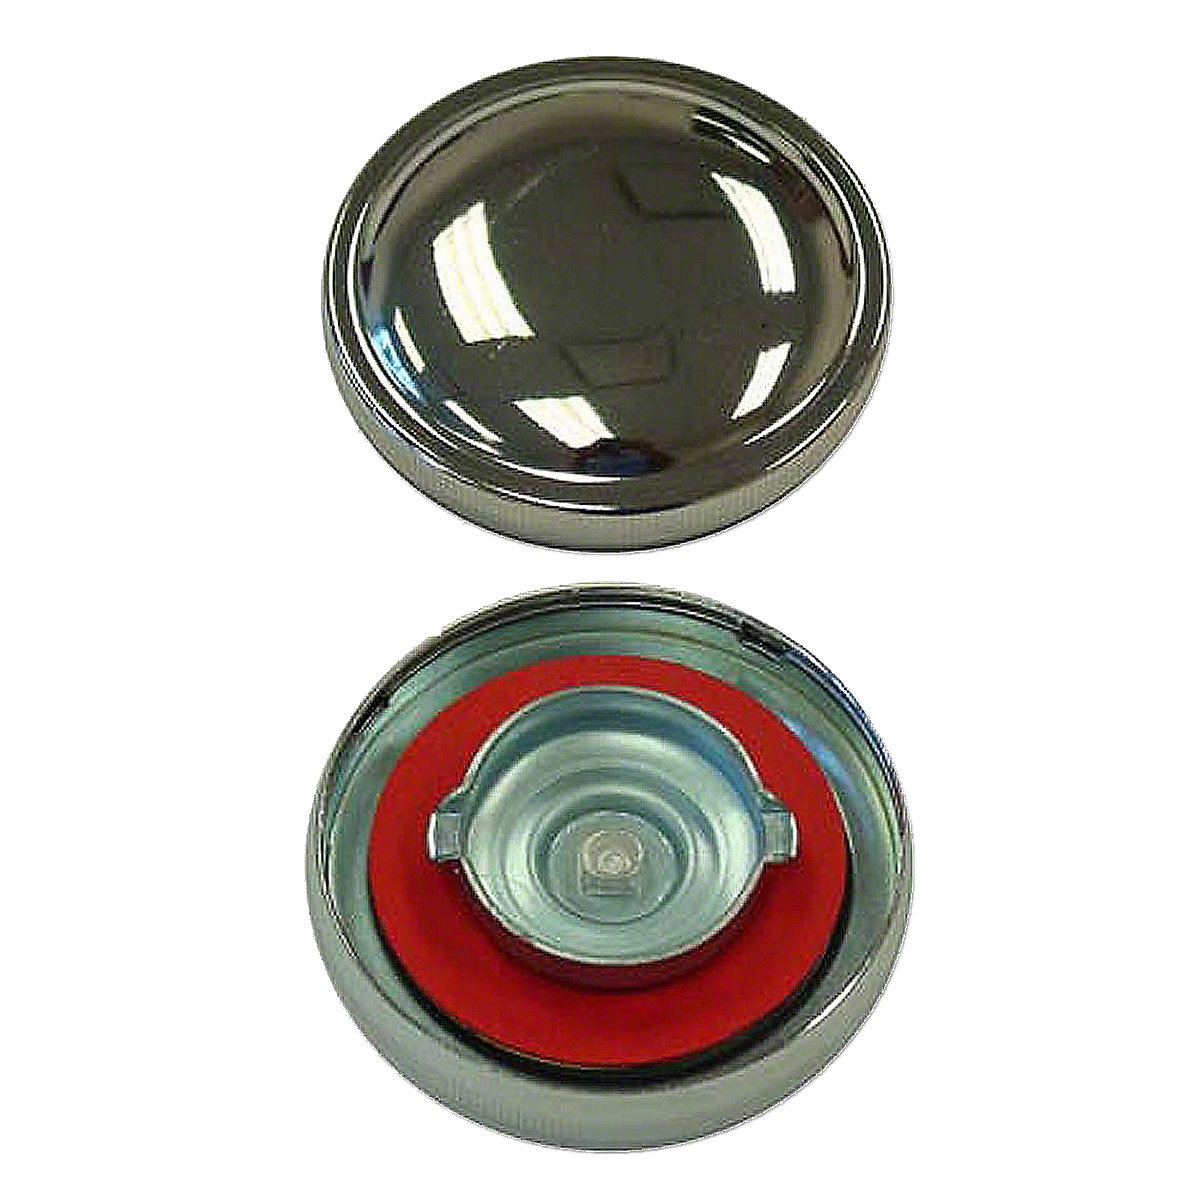 Radiator Cap For Massey Harris: Colt 21, Mustang 23, 20, 22, 81, Pony, 101 Jr, 101 Sr, 102 Jr, 102 Sr.